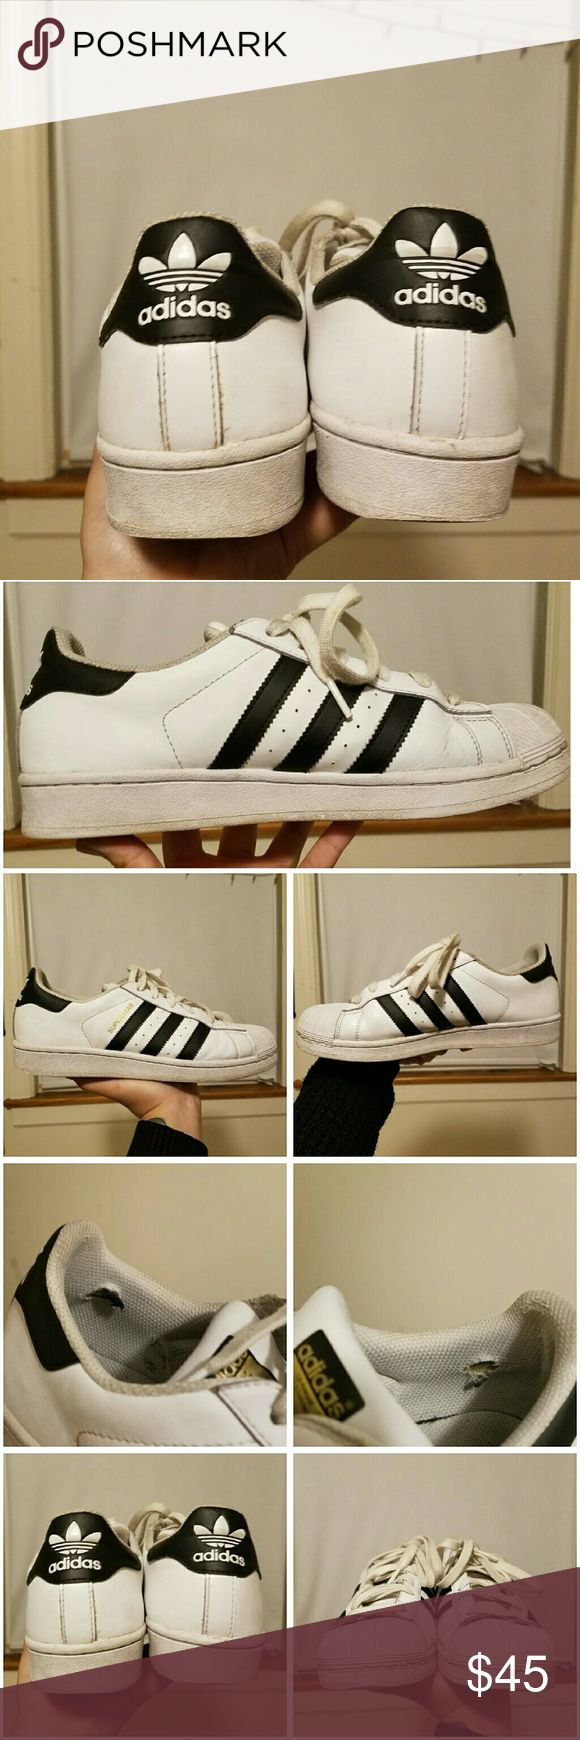 Adidas Superstar Sneakers (B7) (W9) Boys 7 but equivalent to women's 9. Will come in original box. Travelled Europe with these babies. Some good memories but haven't worn since I've been back :( Need new home! Adidas Shoes Sneakers